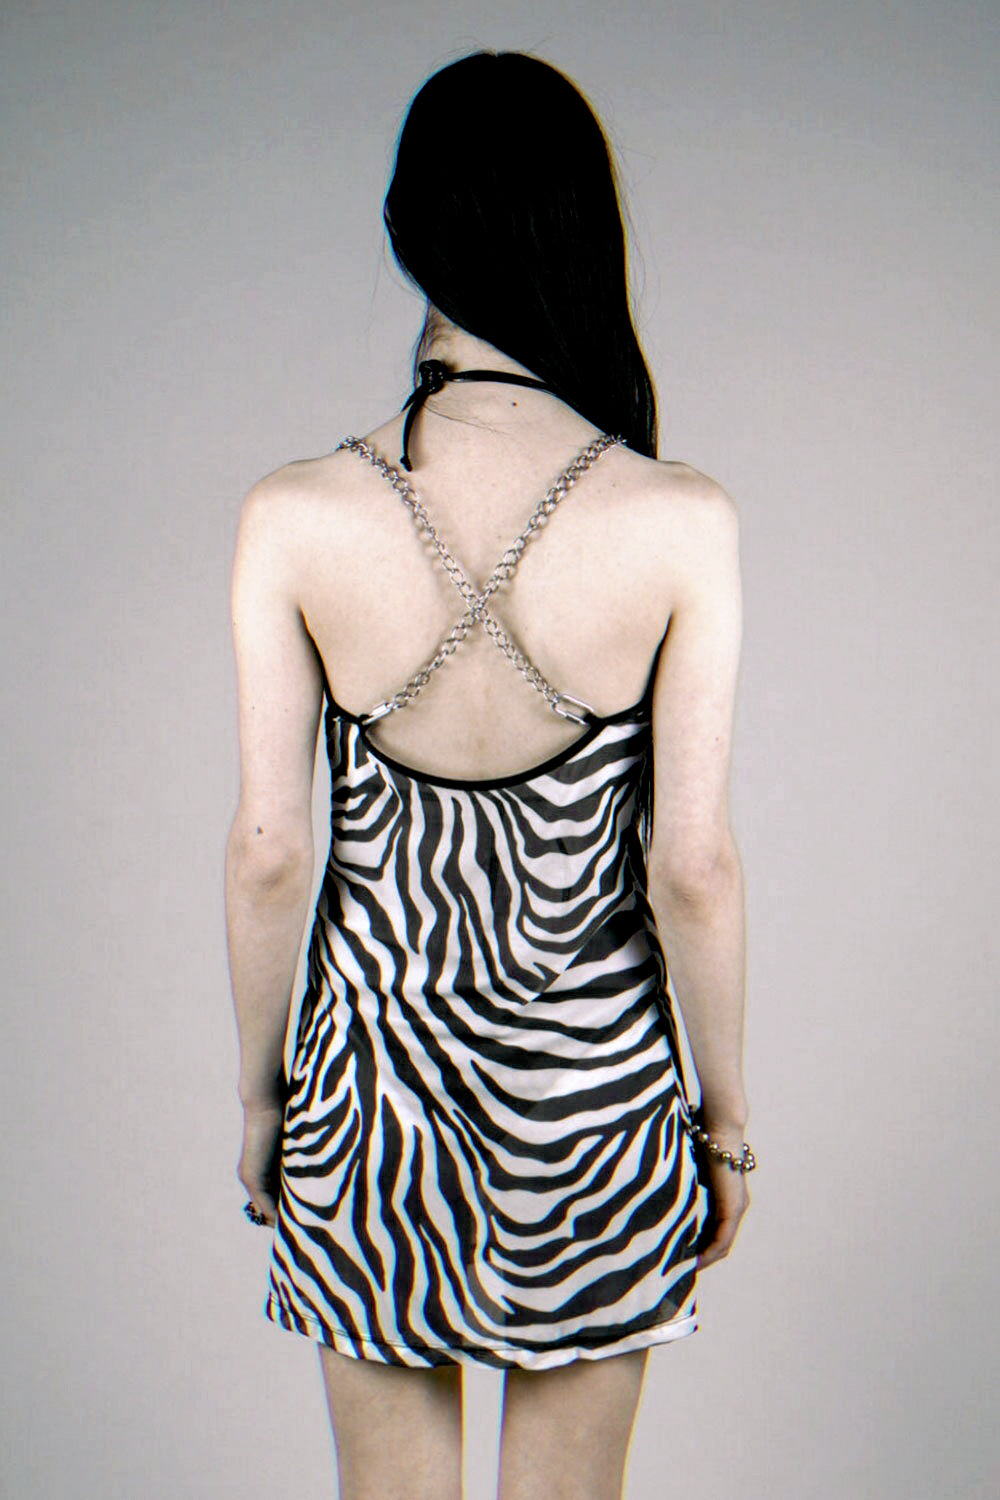 The Heavy Metal Chain Dress in Zebra Mesh Size S